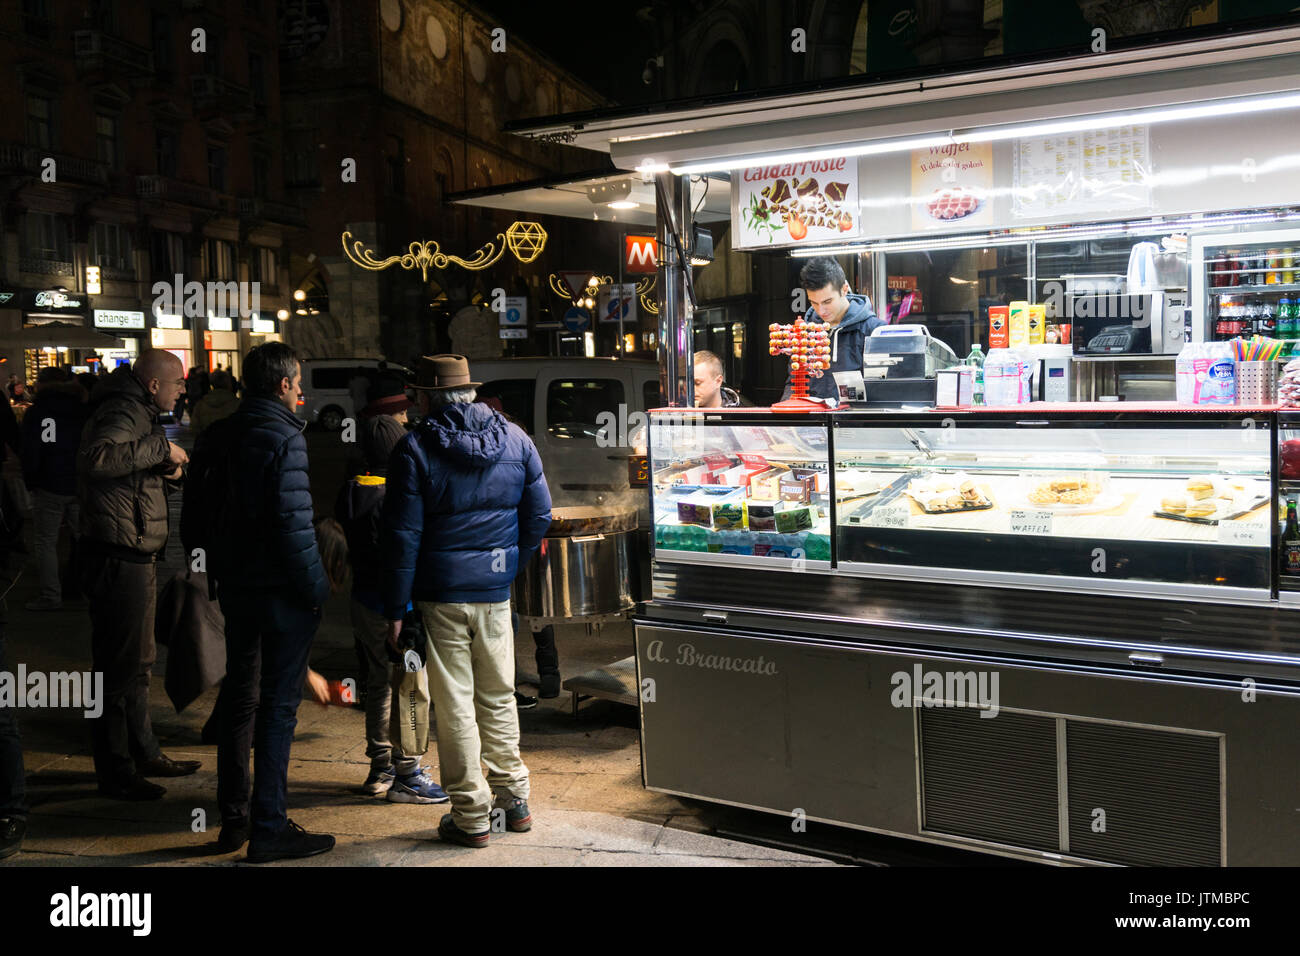 Italy, Lombardy, Milan, food truck in Duomo square - Stock Image